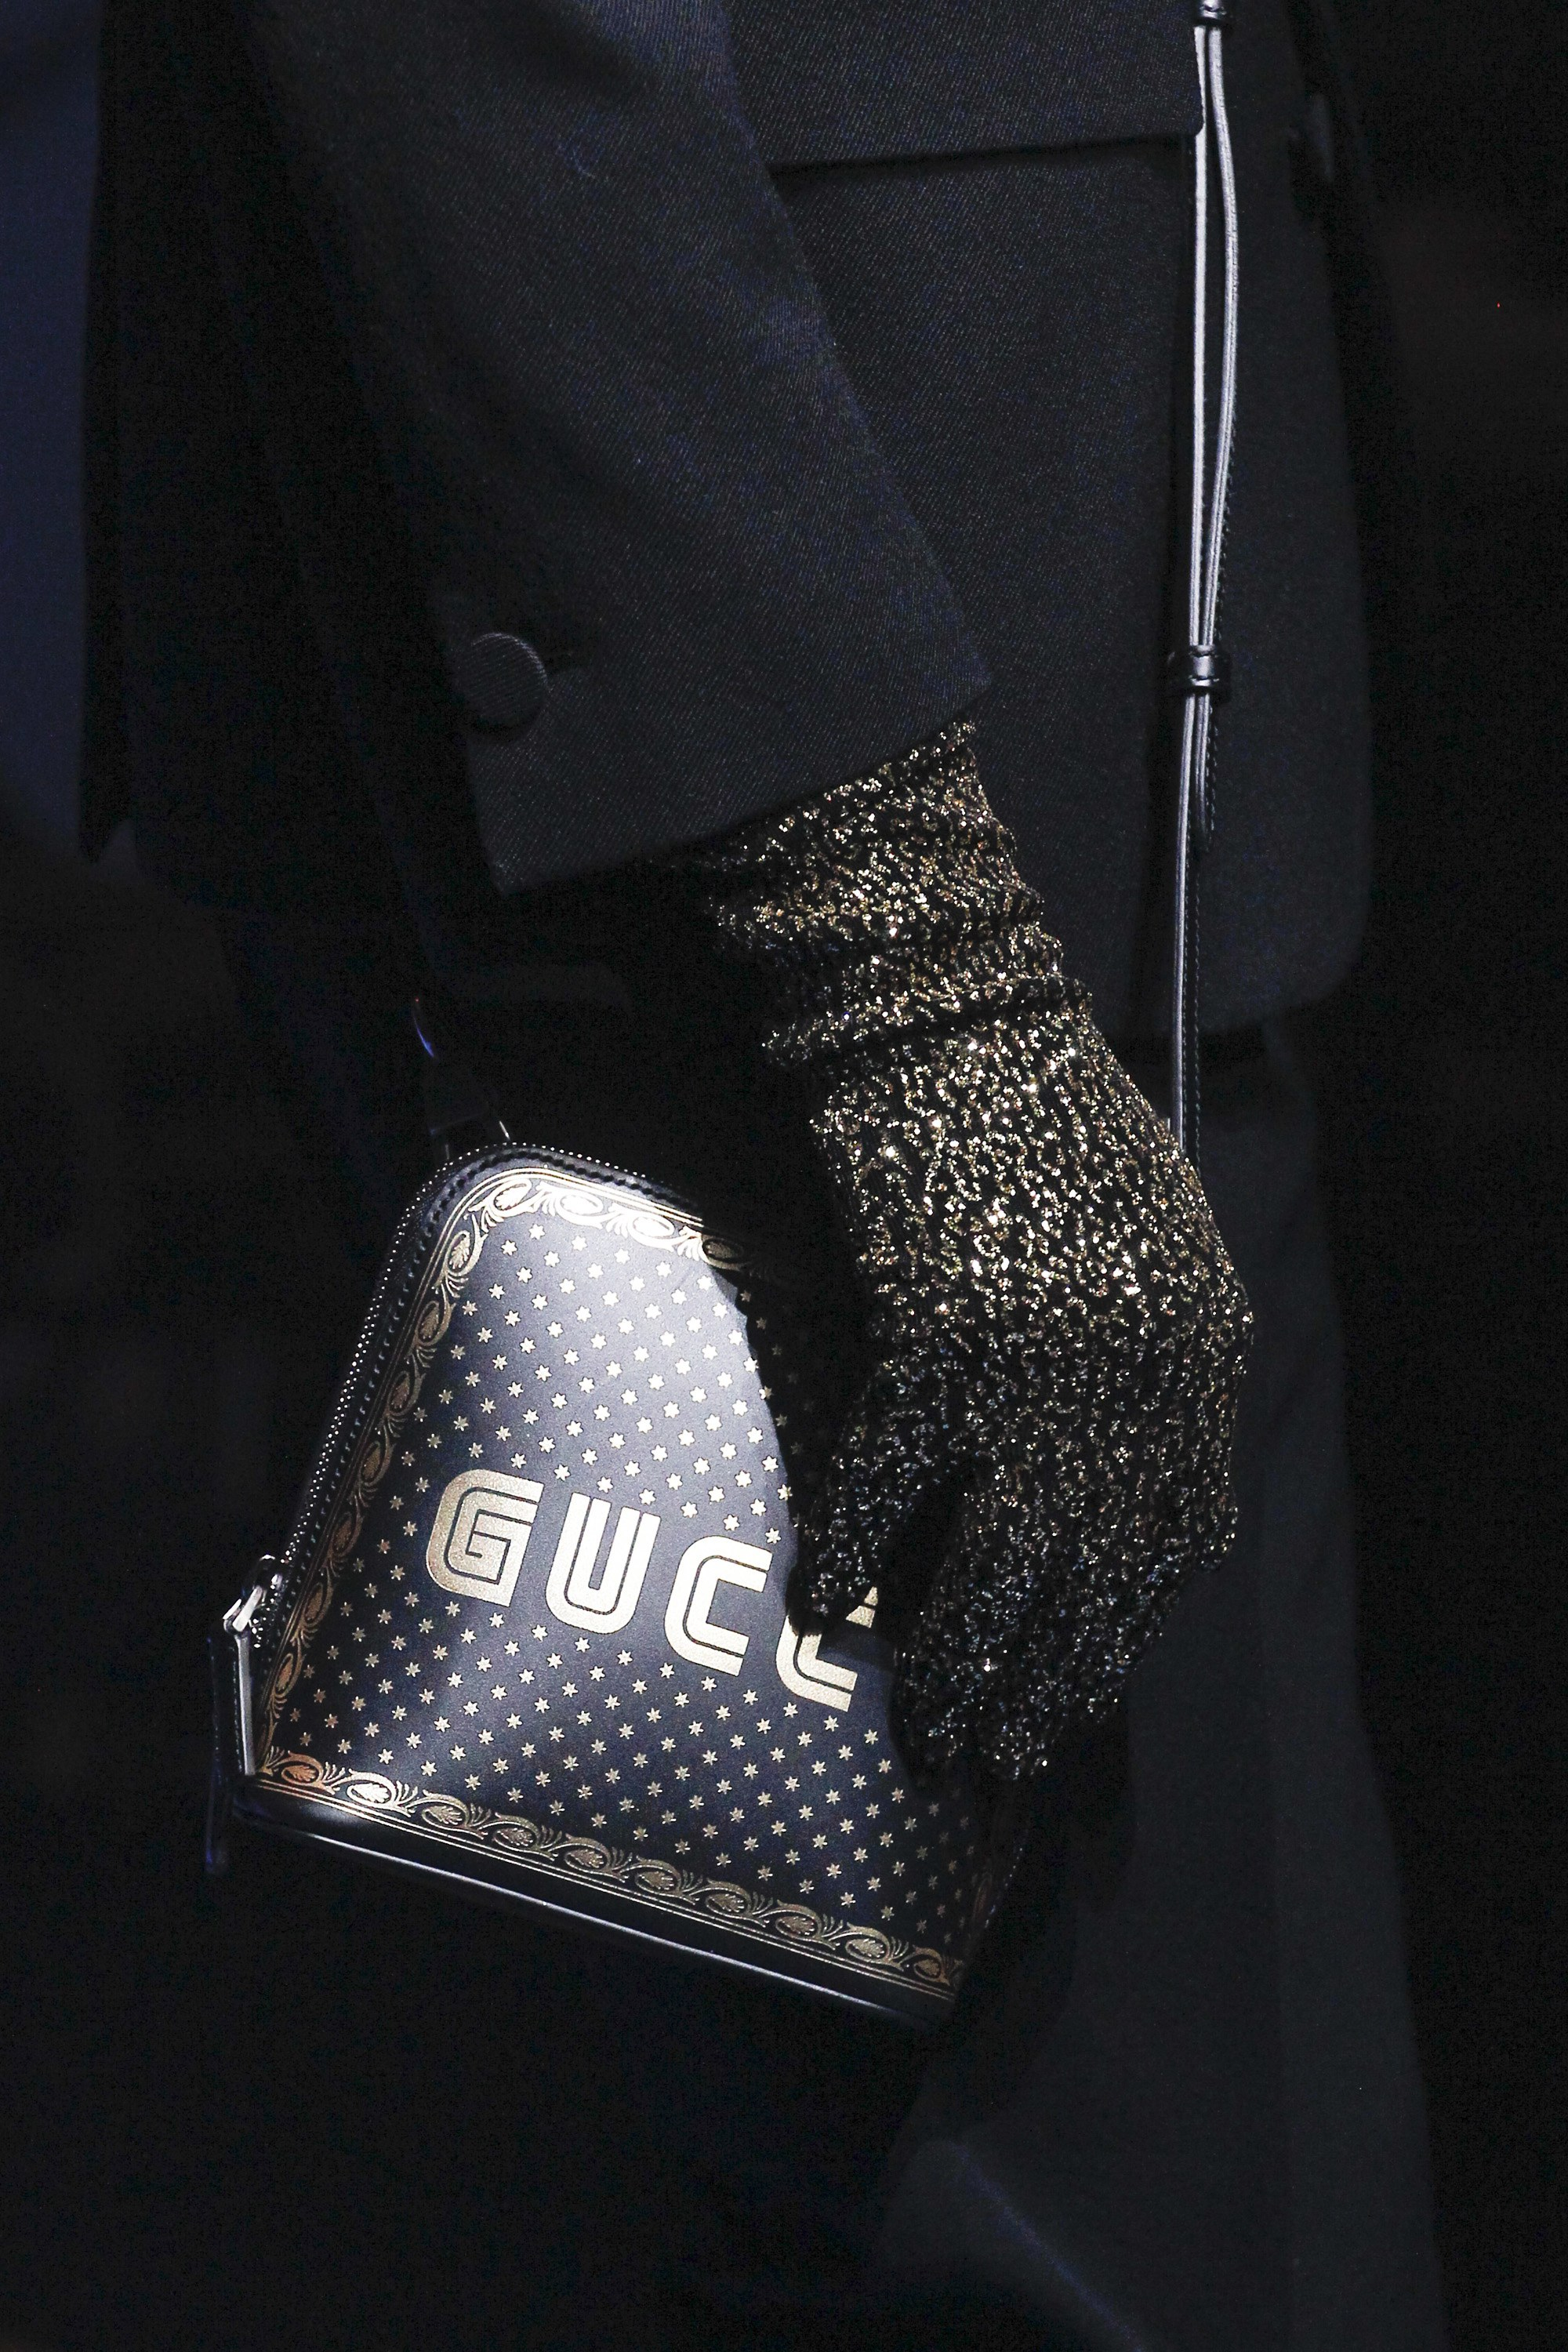 Gucci Spring Summer 2018 Runway Bag Collection Spotted